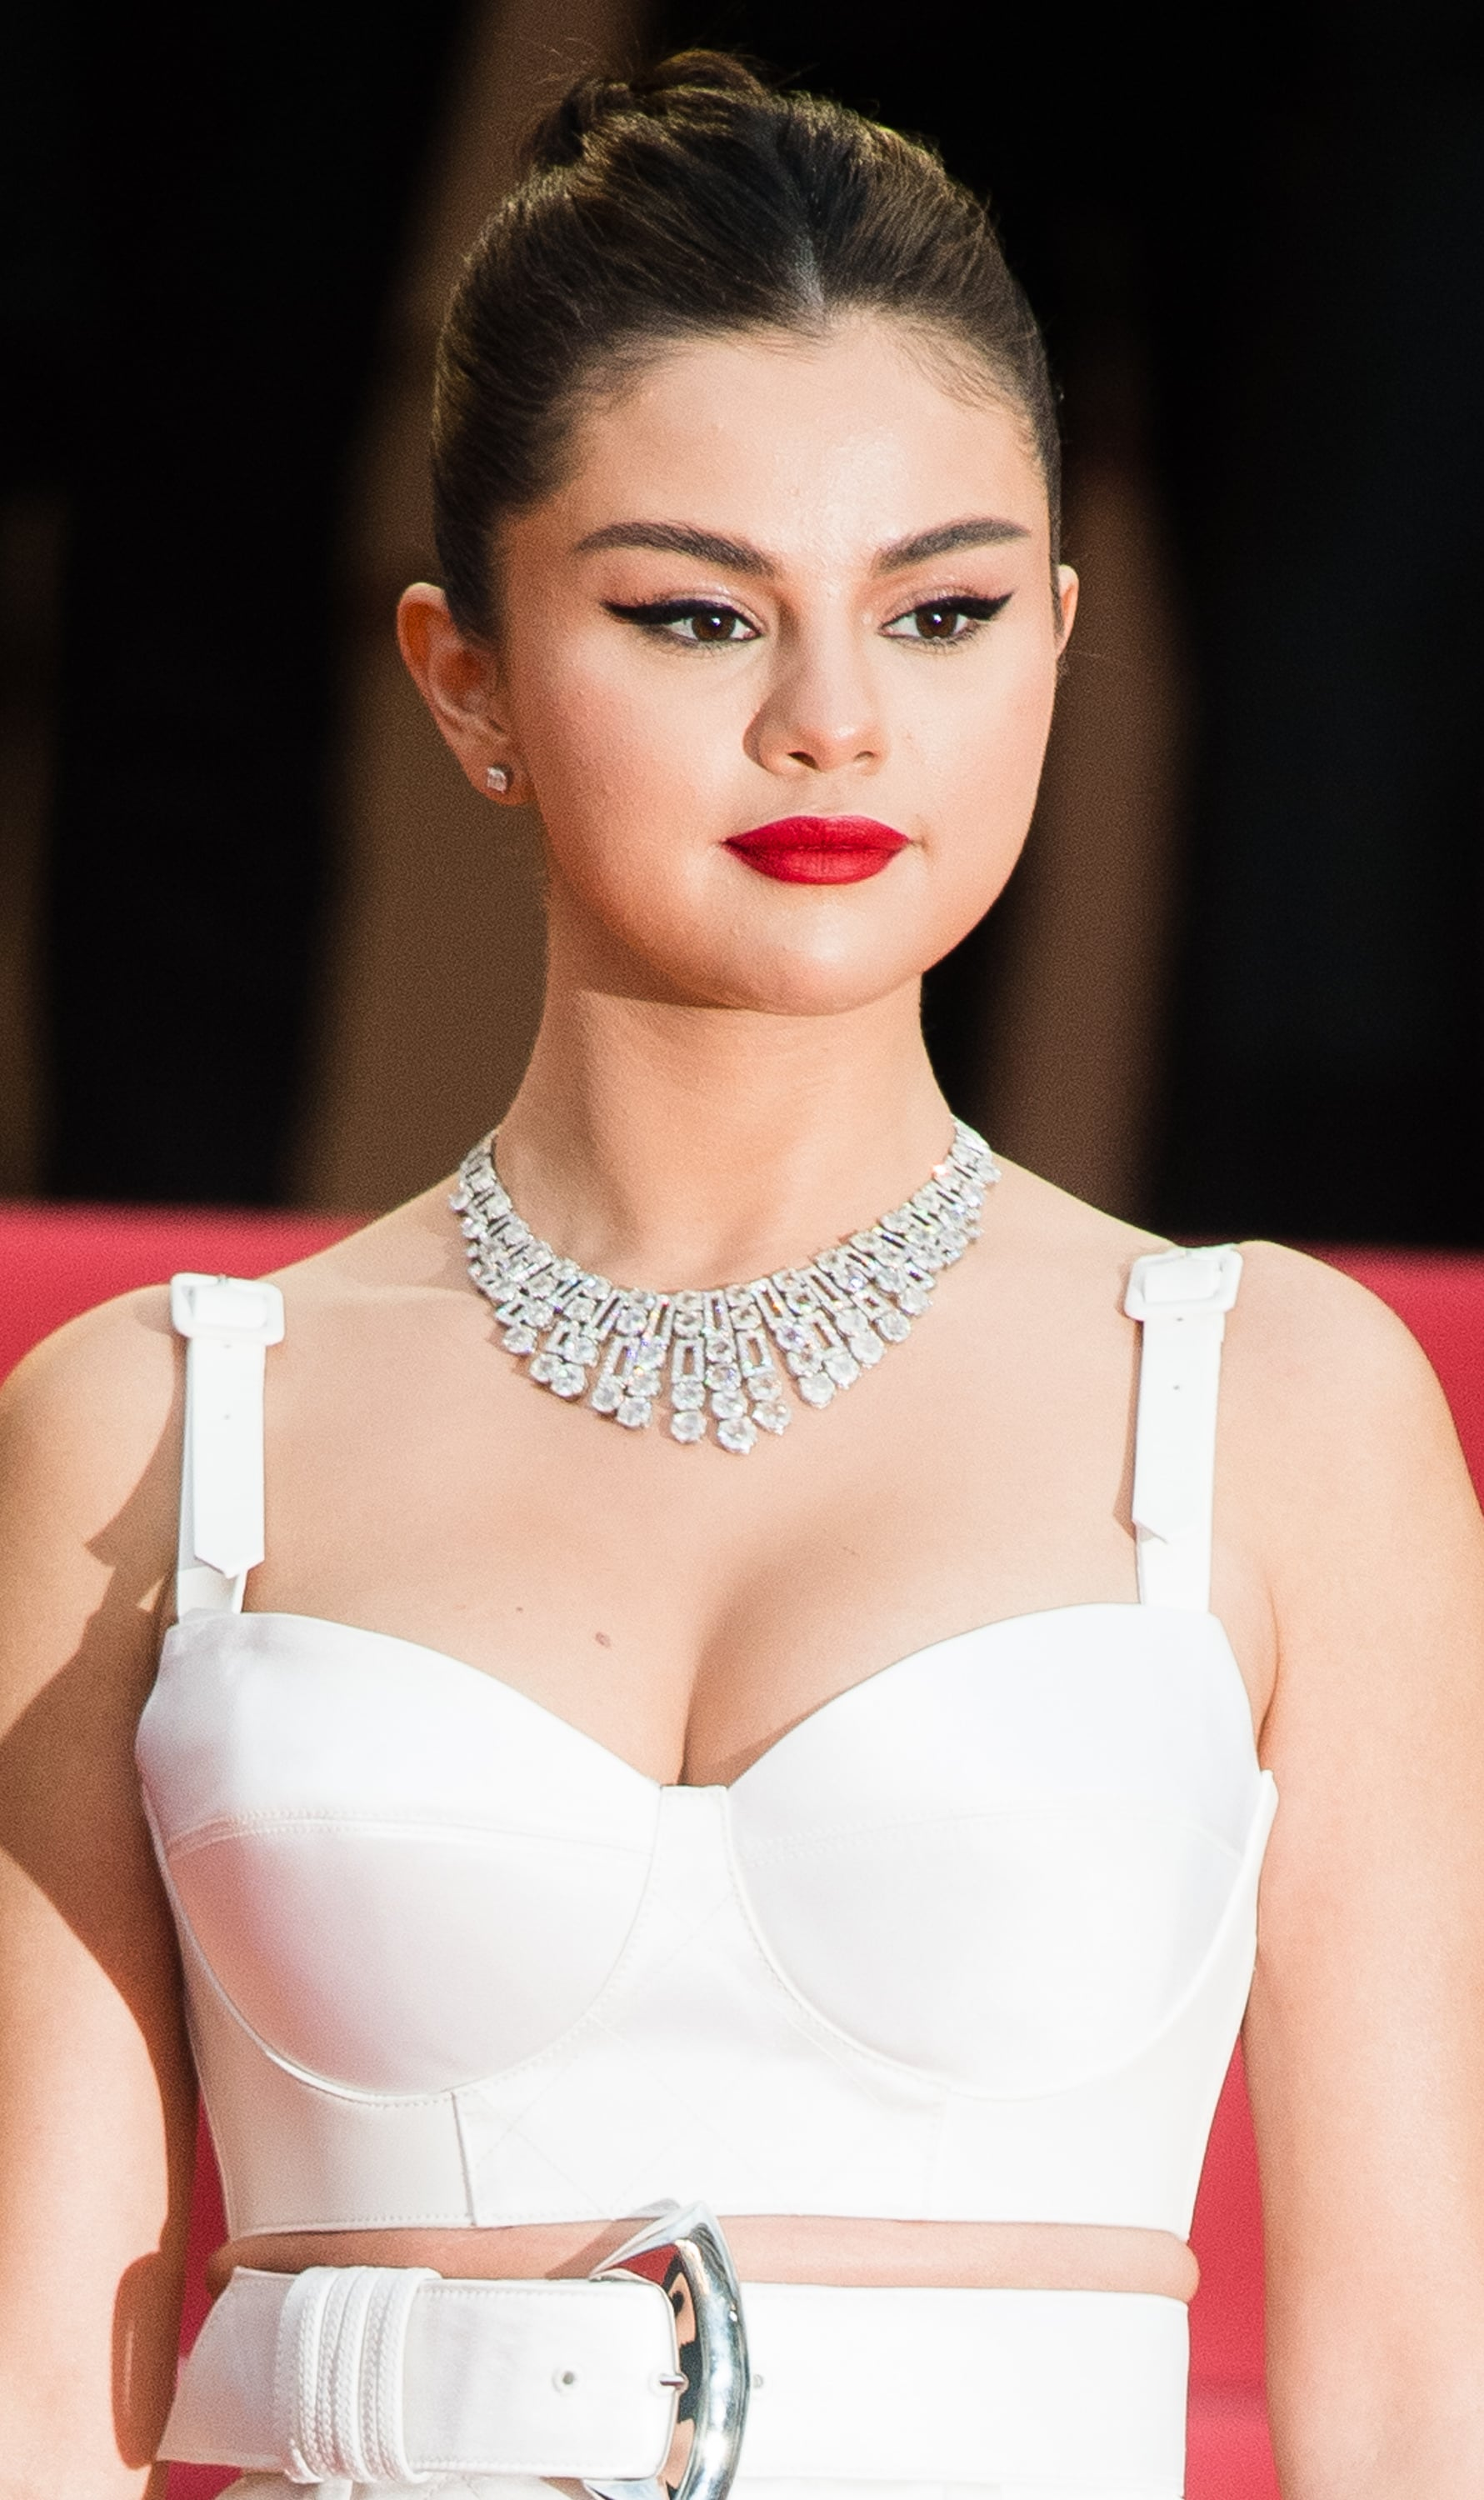 CANNES, FRANCE - MAY 14: Selena Gomez attends the opening ceremony and screening of